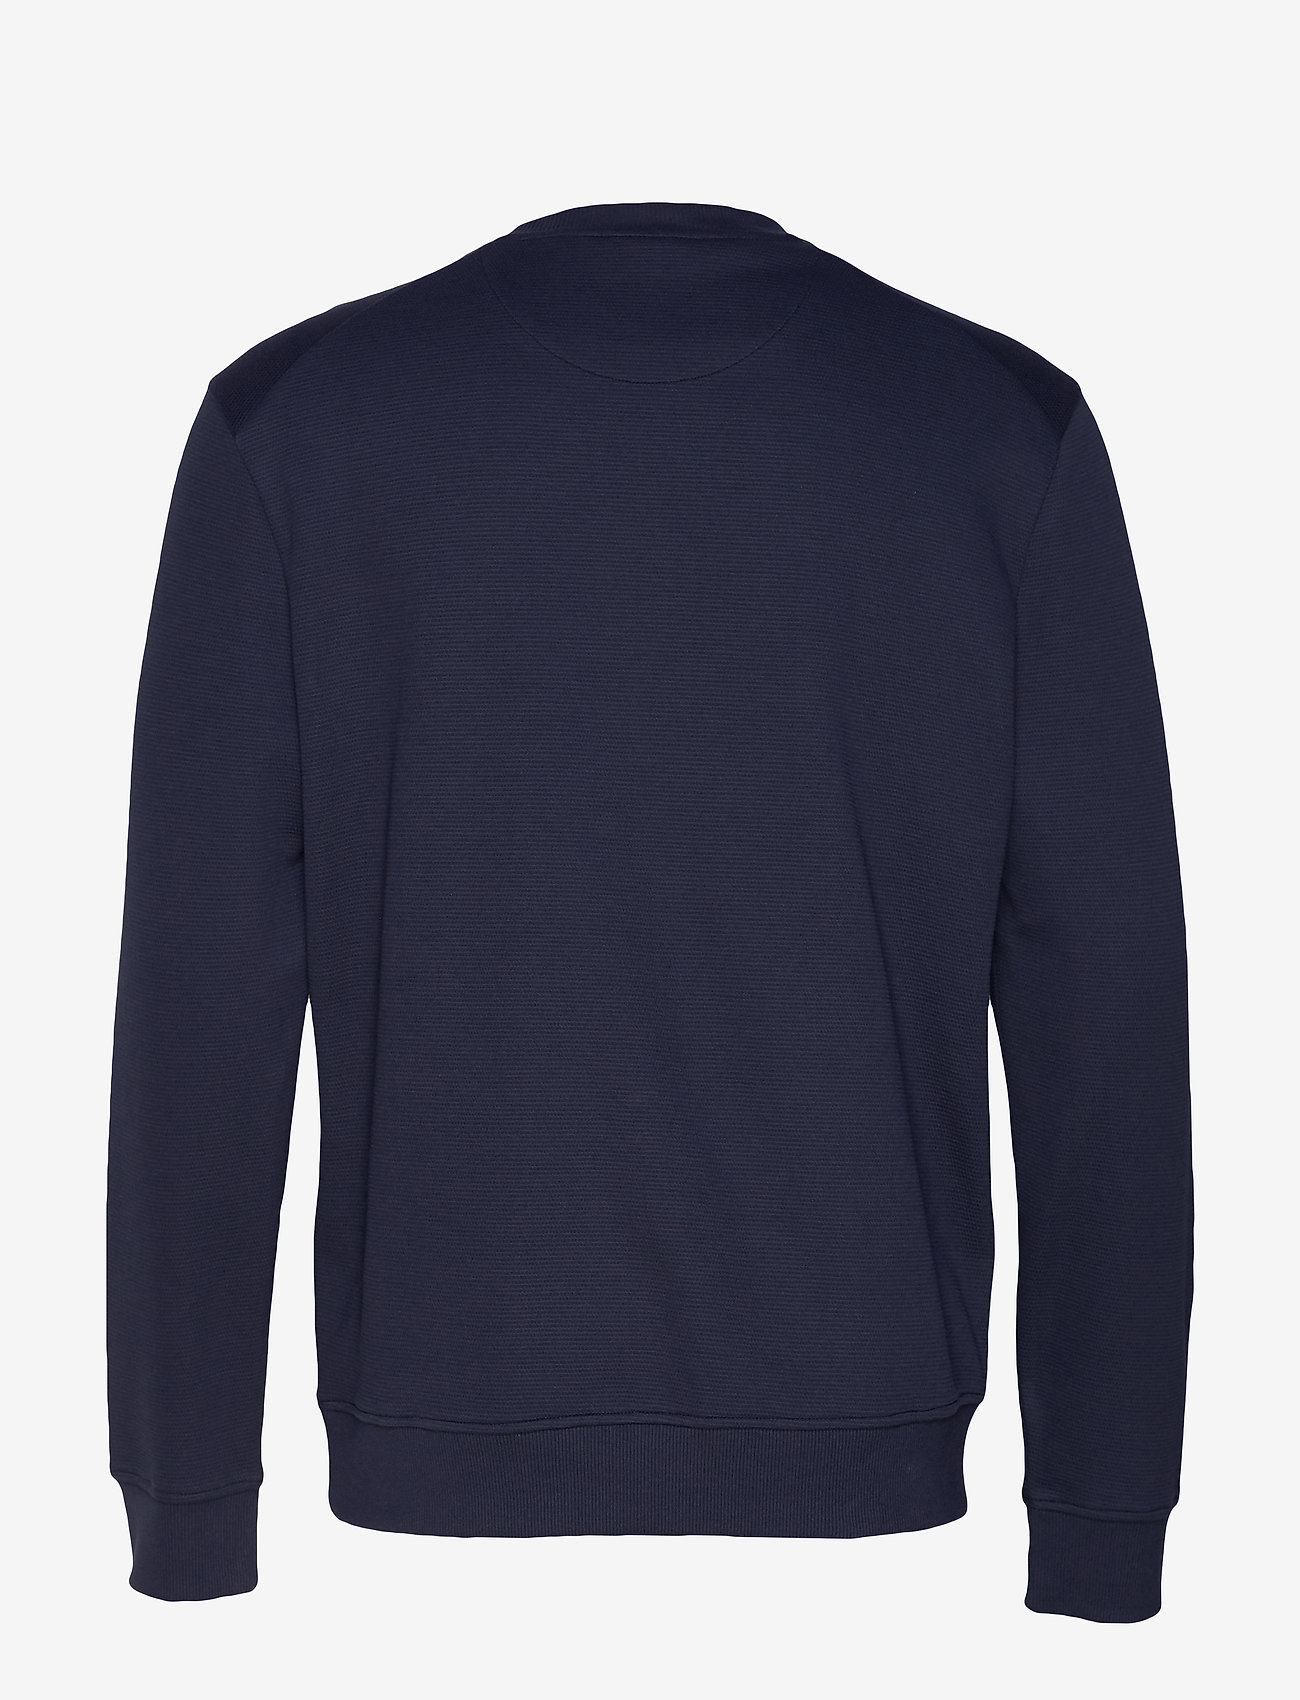 Hugo Daller - Sweatshirts Dark Blue